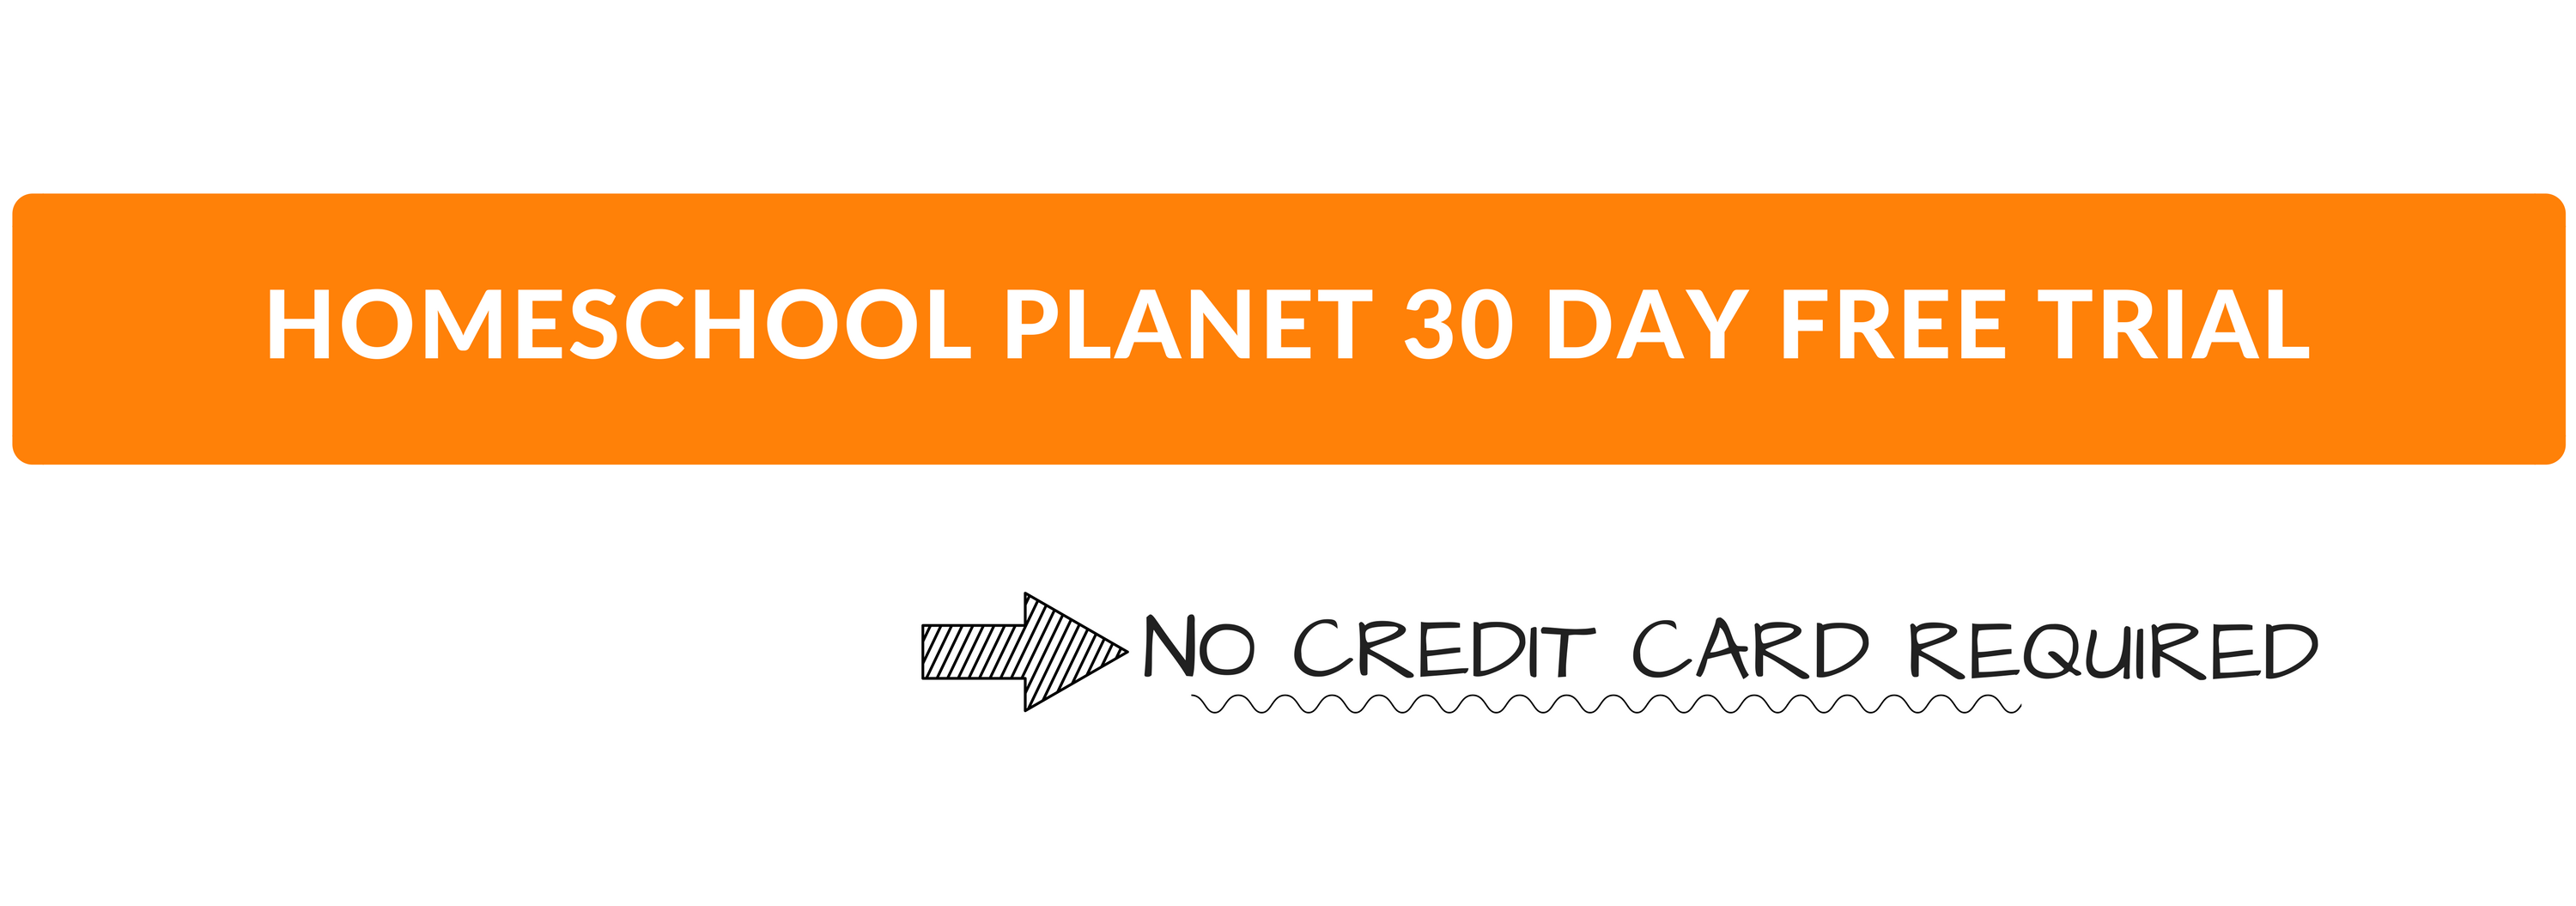 HOMESCHOOL PLANET 30 DAY FREE TRIAL